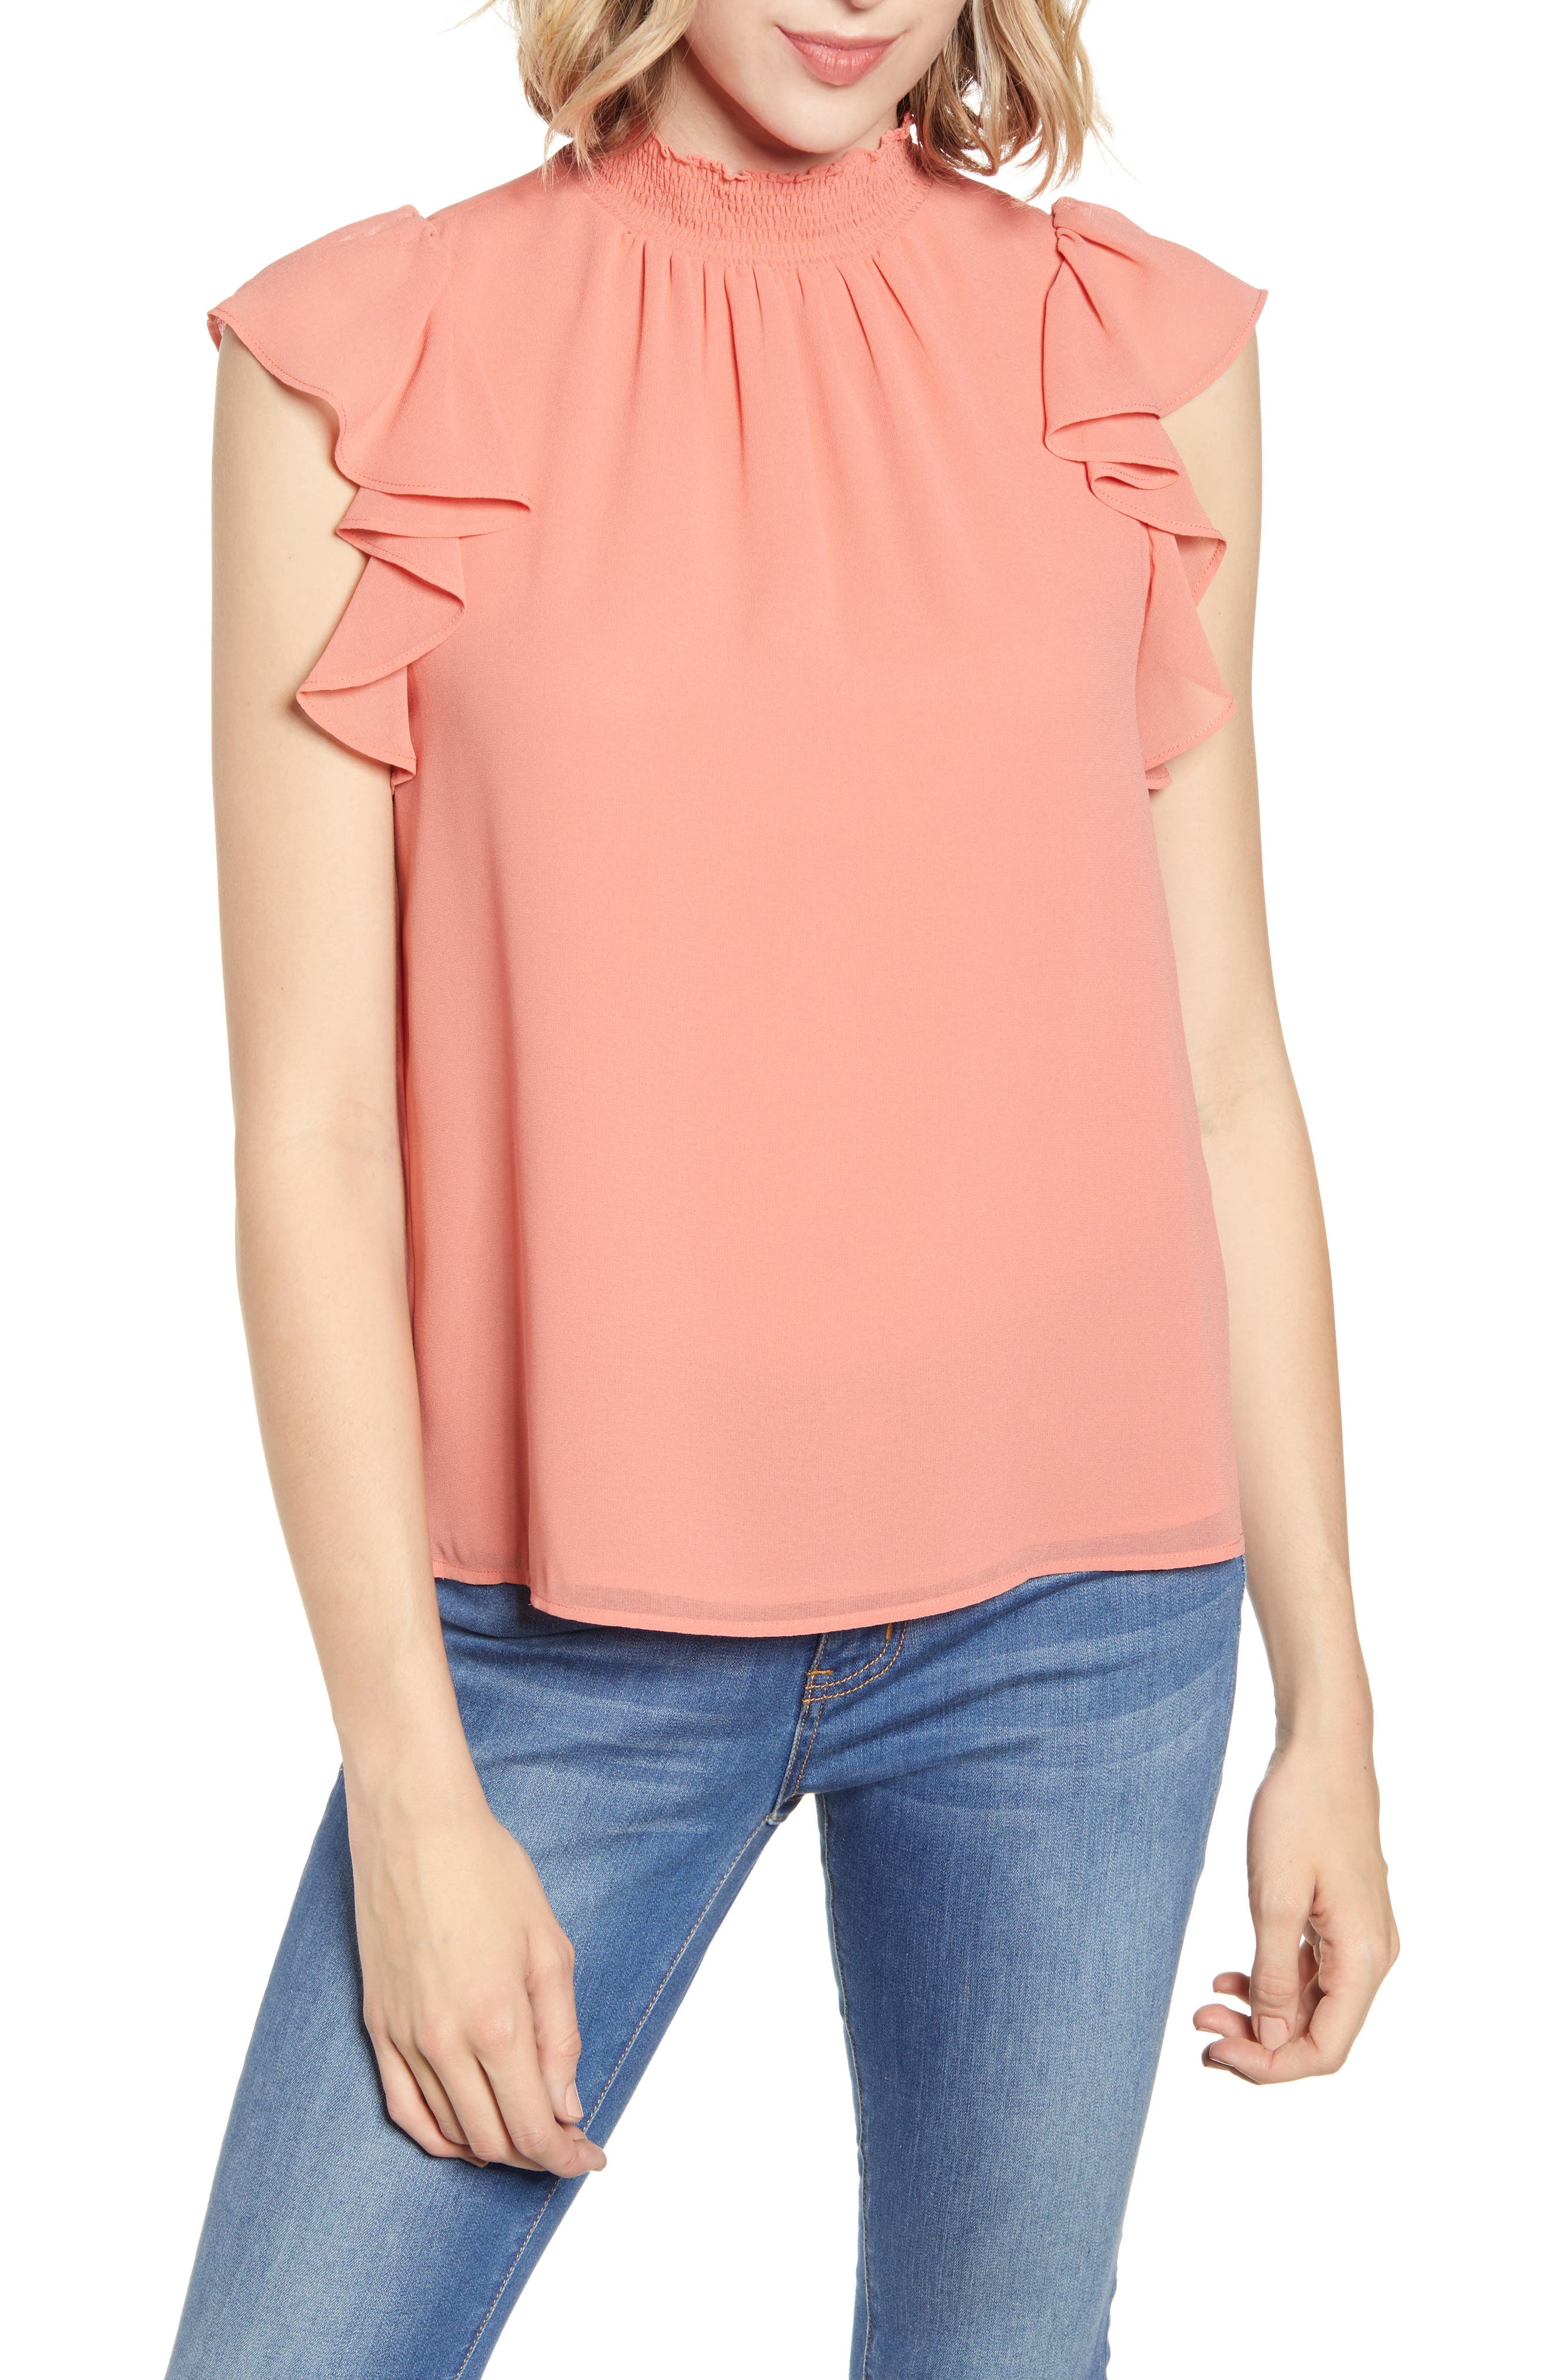 20c523d8819 Women's Mock Neck Tops | Nordstrom